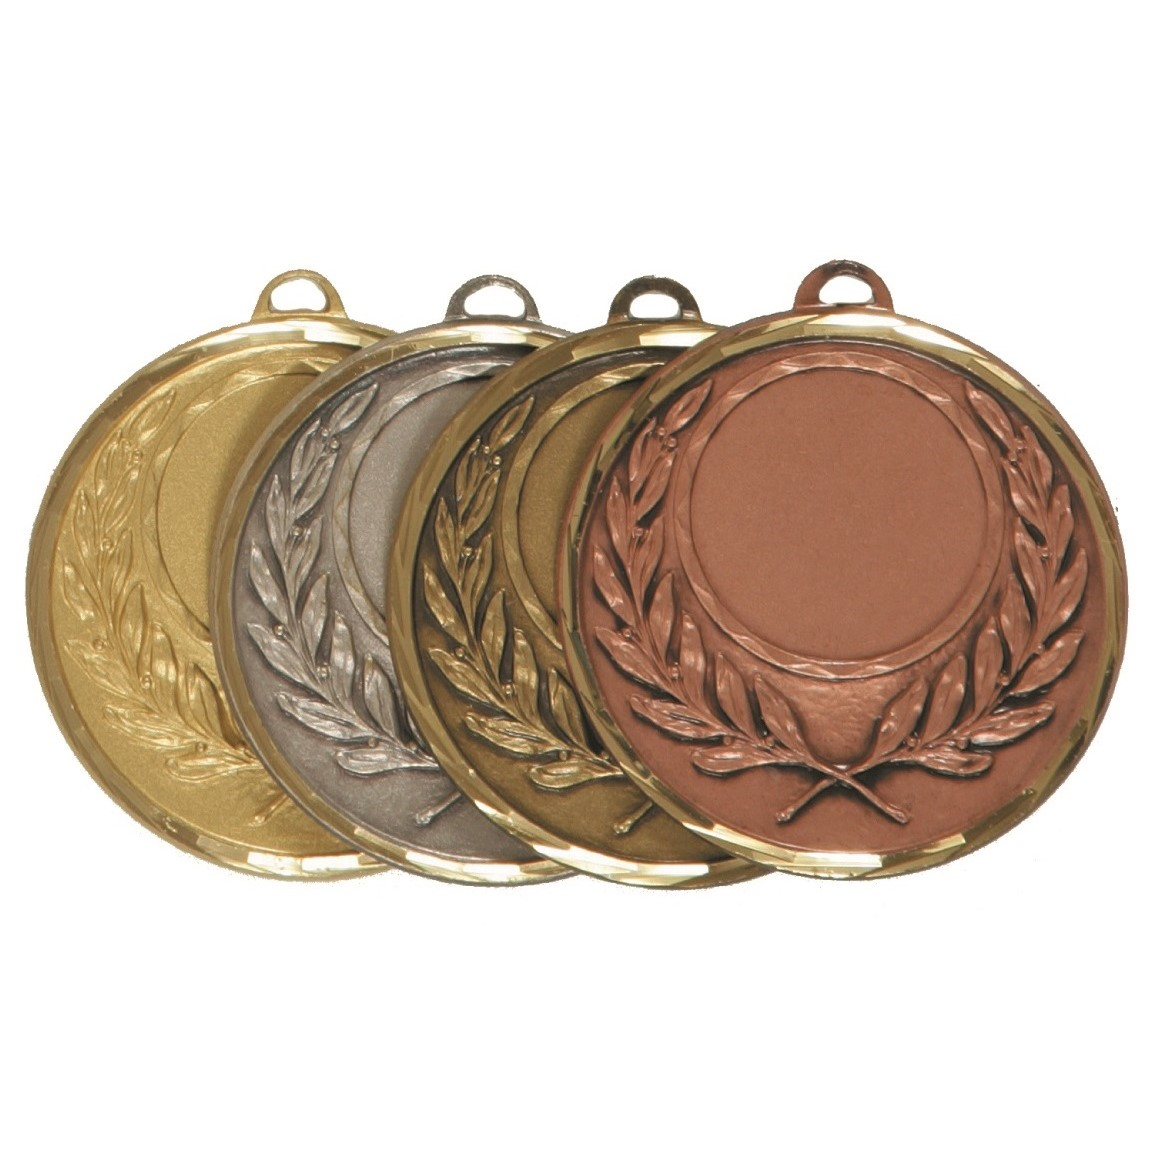 Faceted Wreath Medal - 5605F